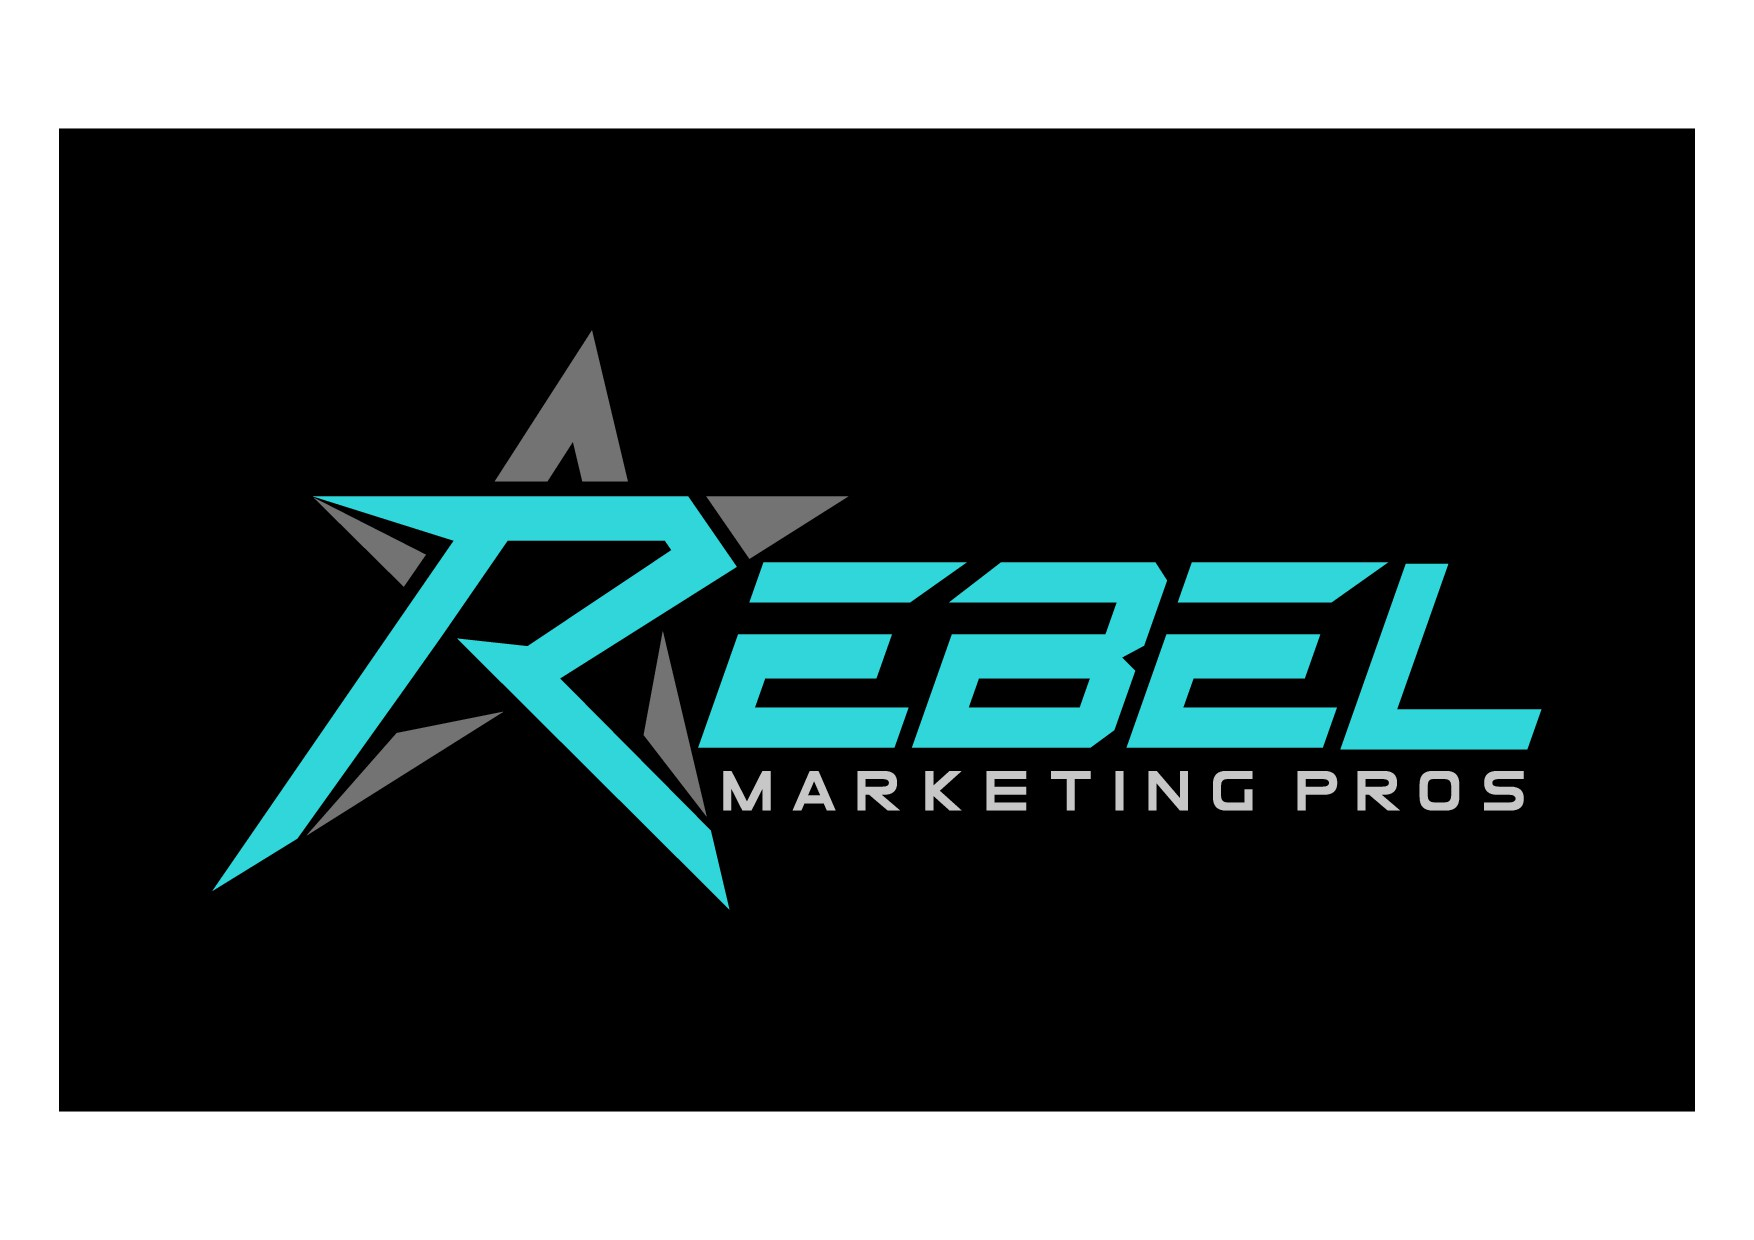 Design a BOLD, Modern logo for us Rebels at Rebel Marketing Pros